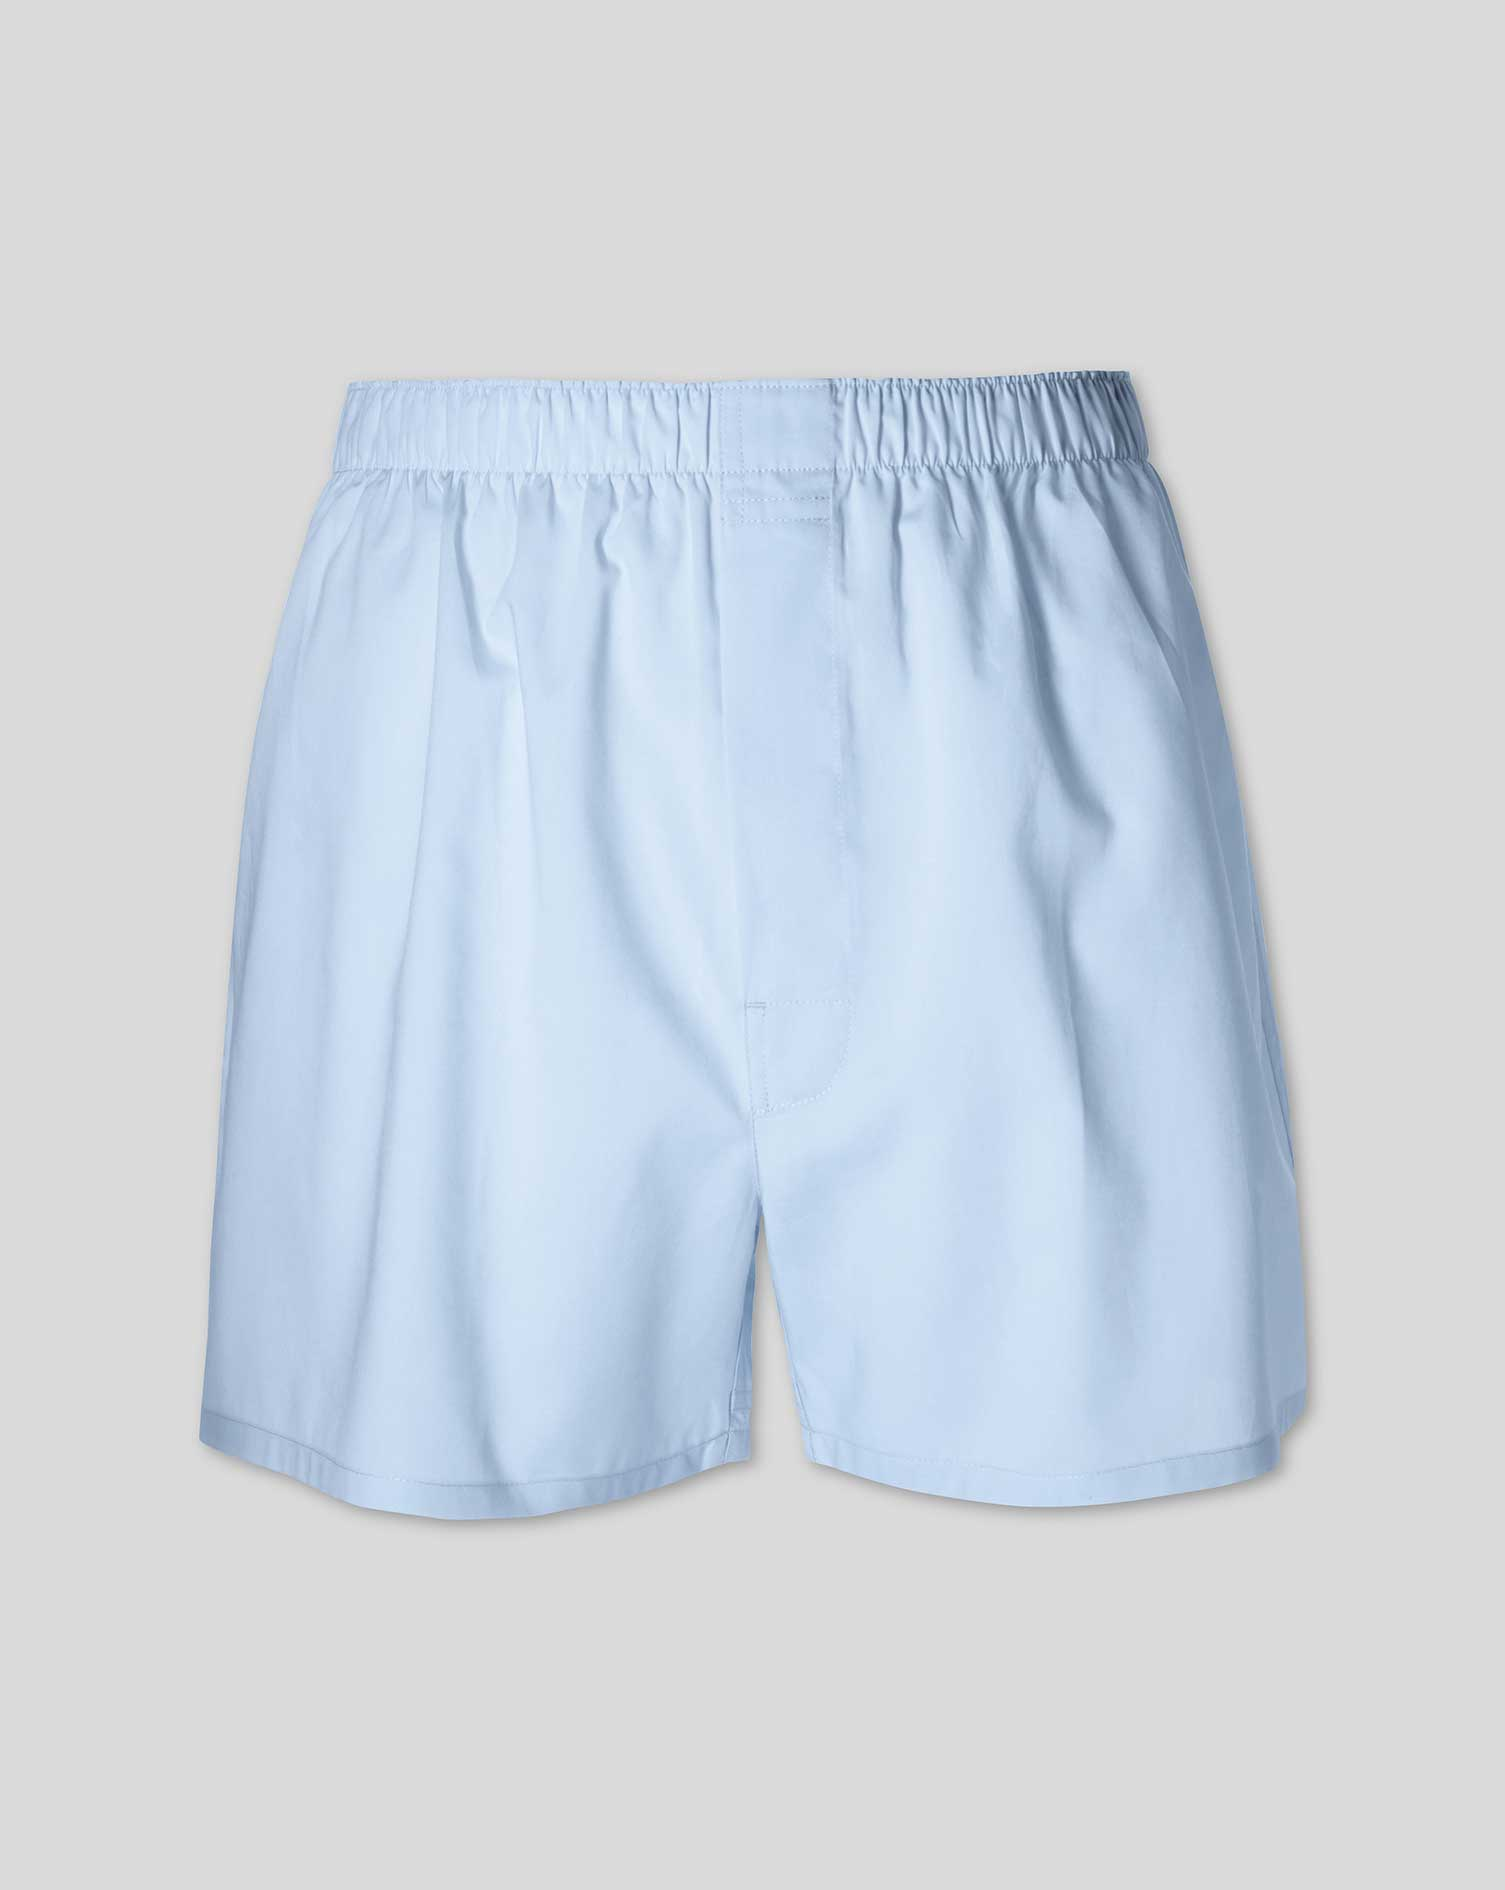 Plain Sky Blue Woven Boxers Size XL by Charles Tyrwhitt